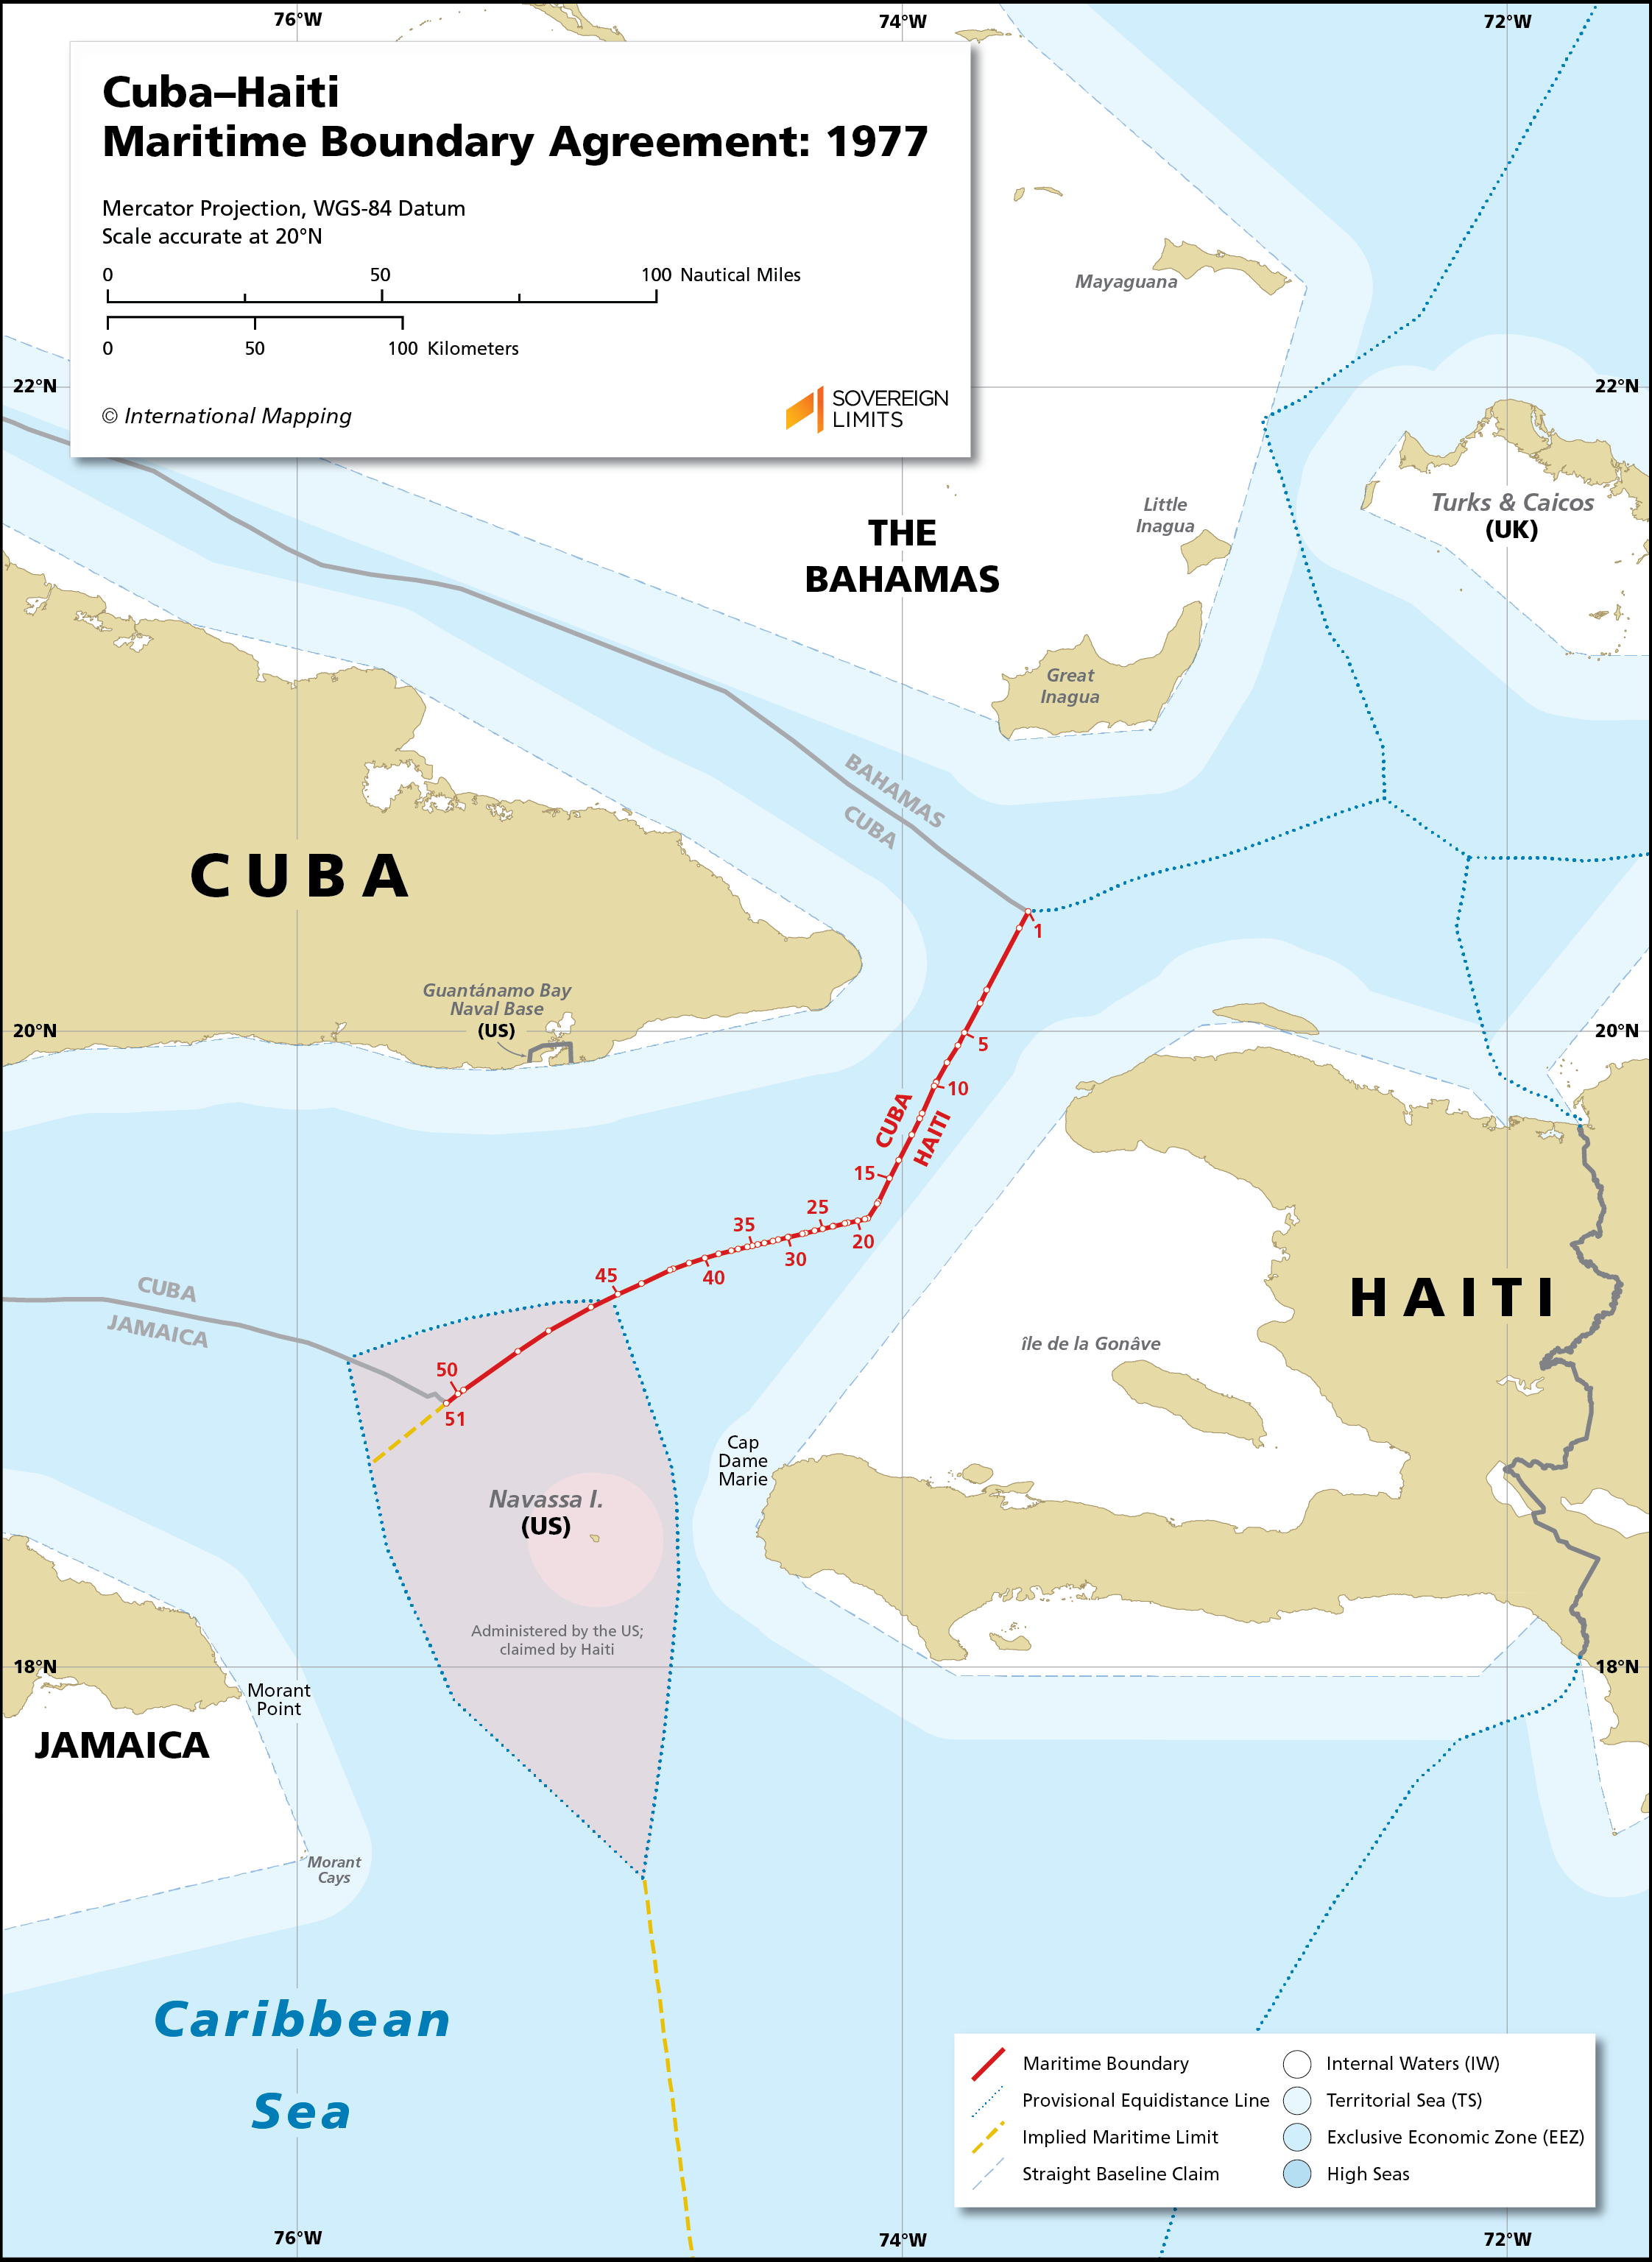 Map showing the maritime boundary between Cuba and Haiti